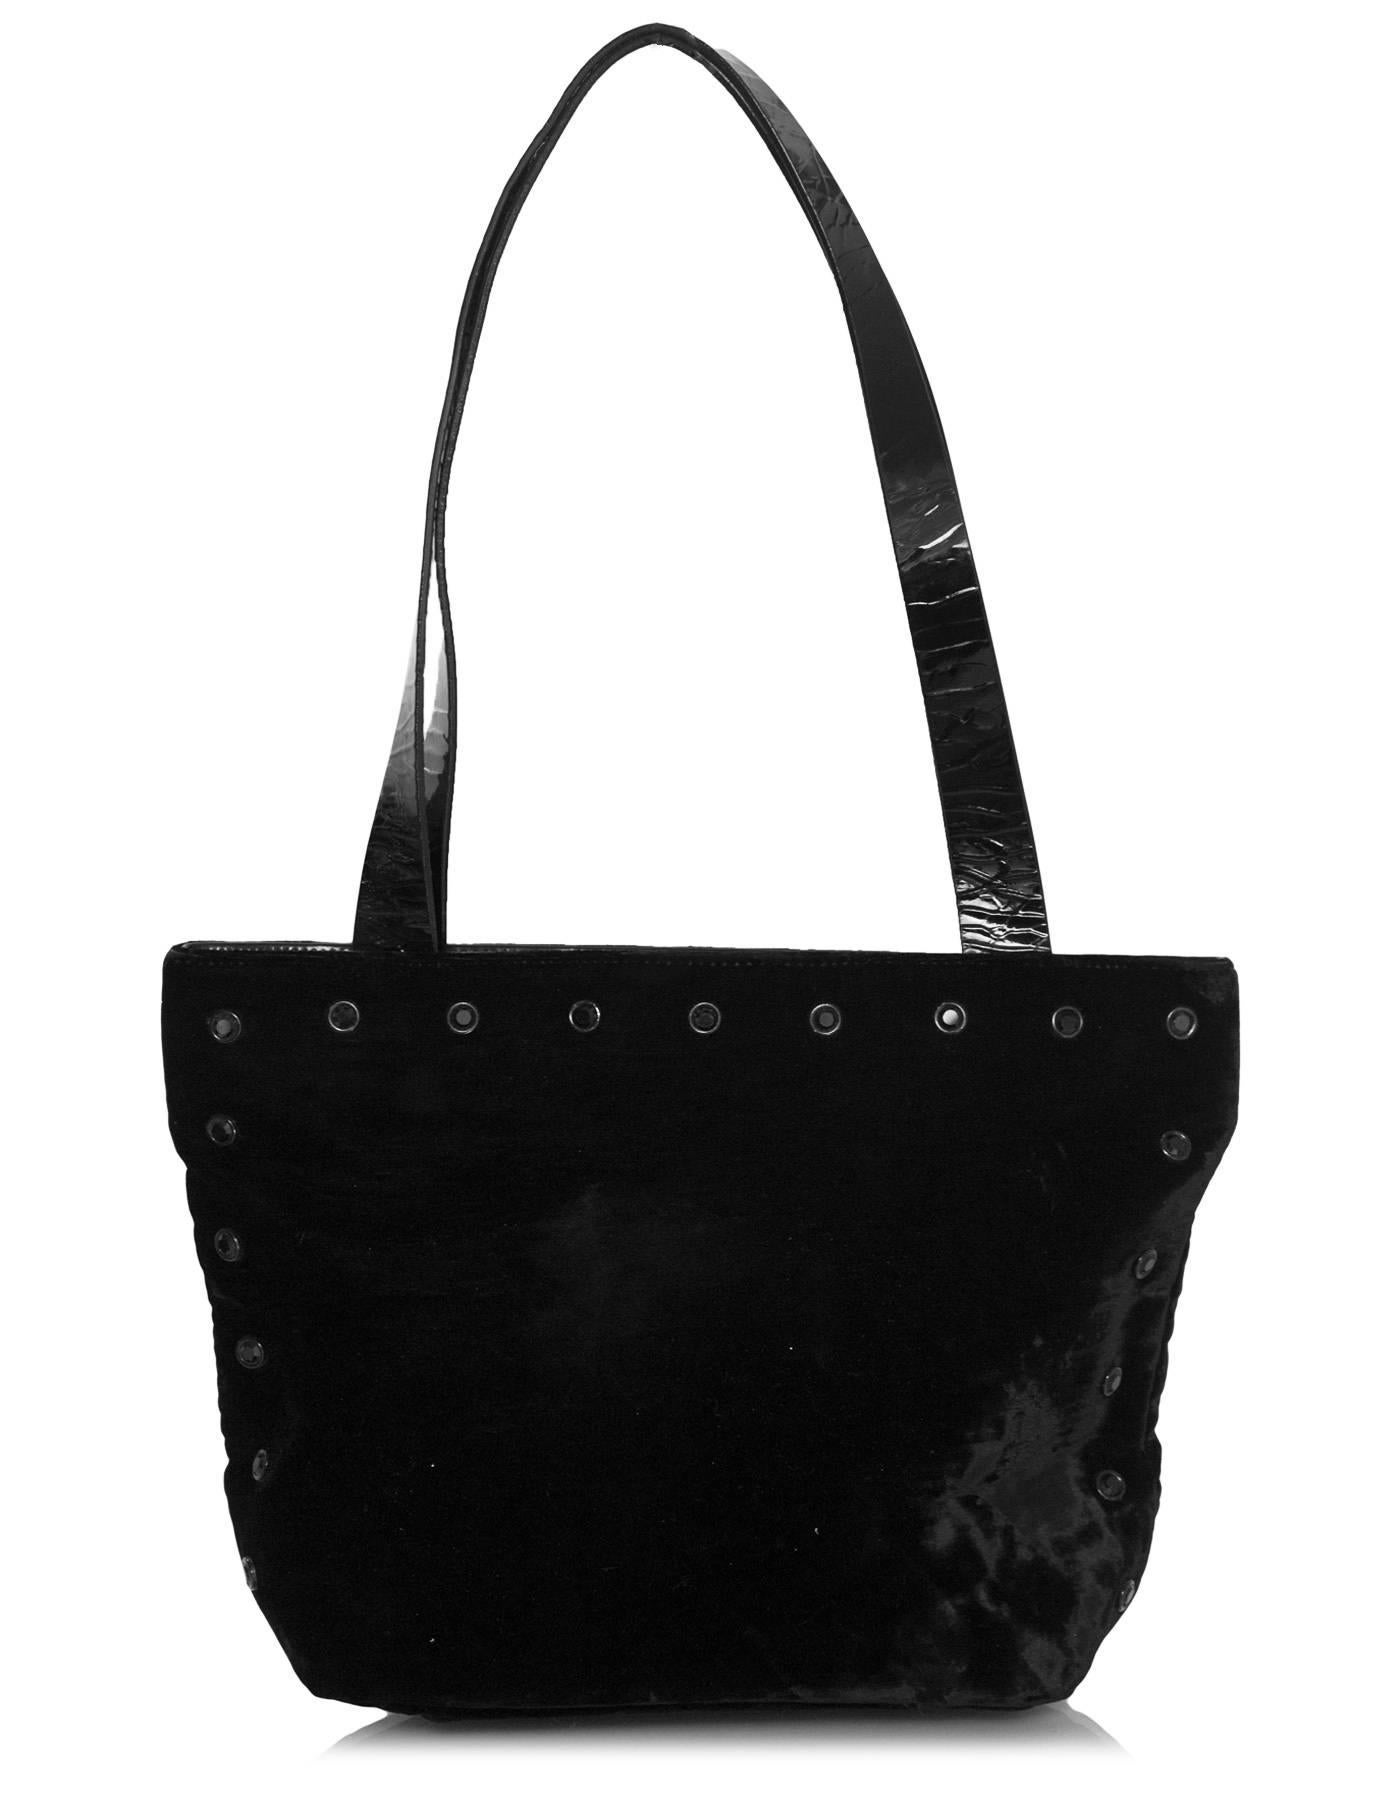 1stdibs Pauric Sweeney Black Patent Large Handle Bag JqlKQLnuD4